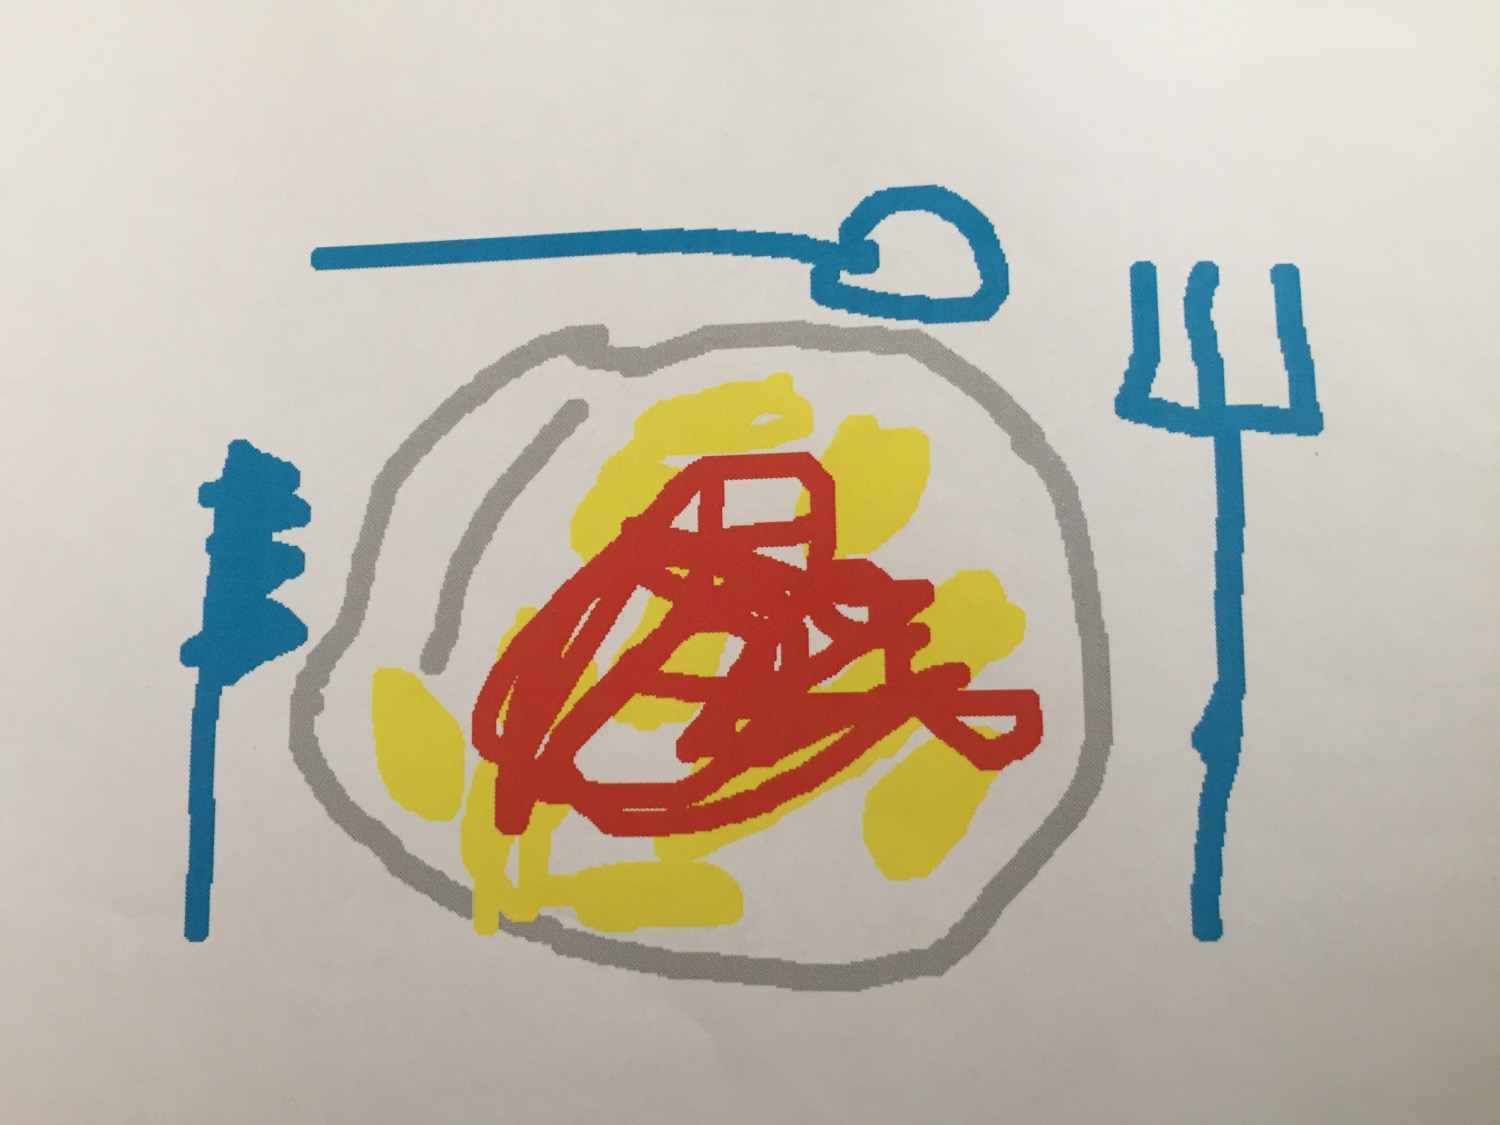 An image drawn by my daughter picturing my favorite meal, Pasta with tomato sauce.